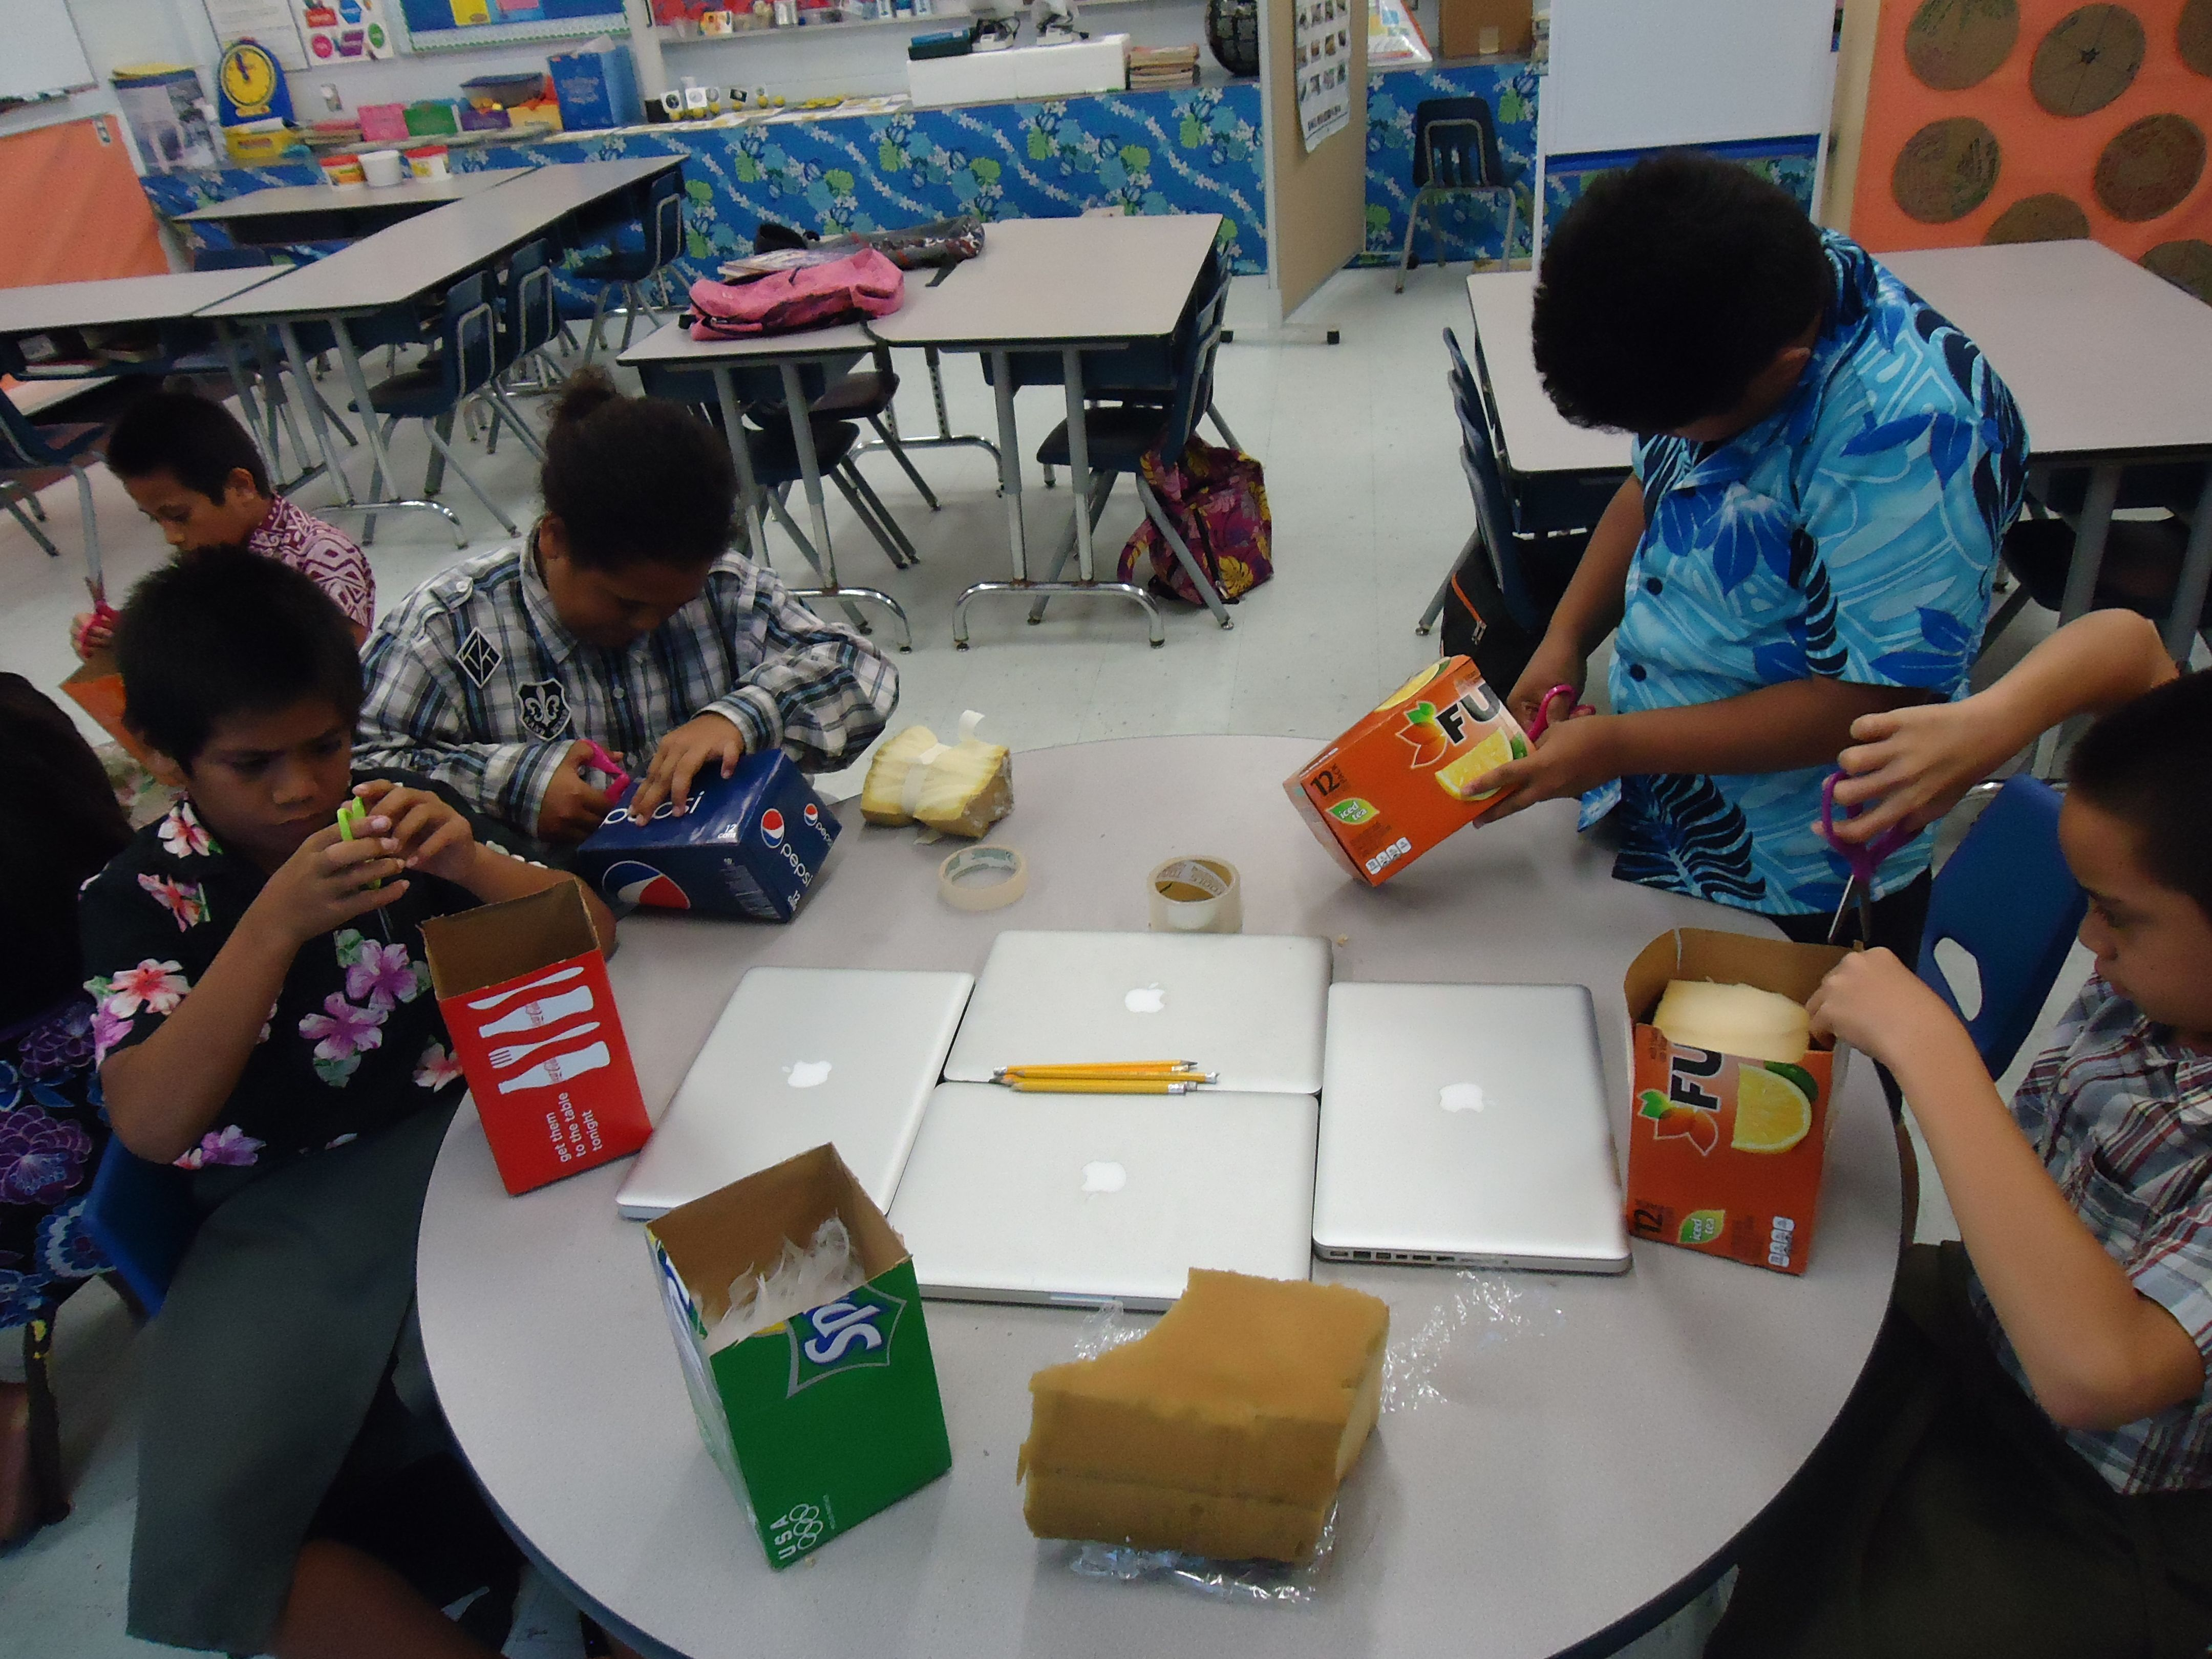 Kids Are Working On Their Egg Drop Experiment The